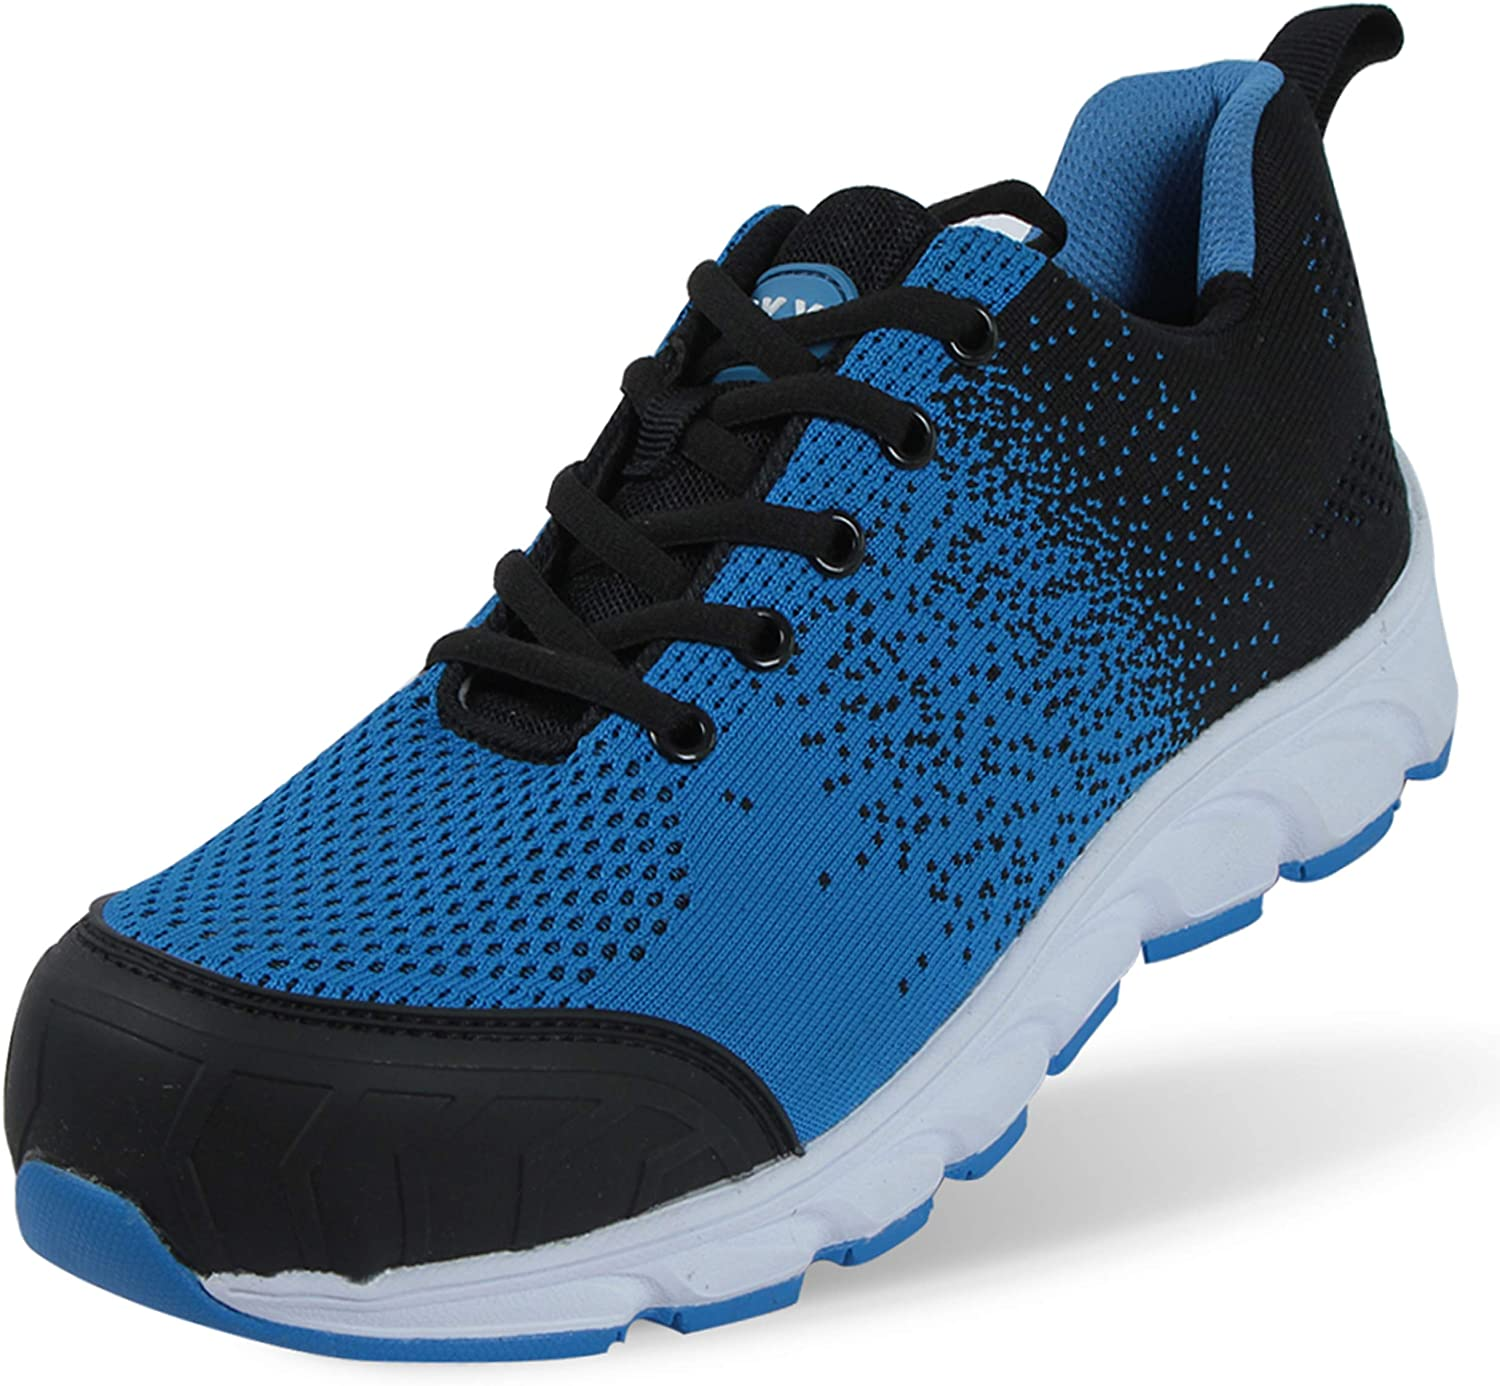 OUXX Work Shoes with Steel Toe for Men